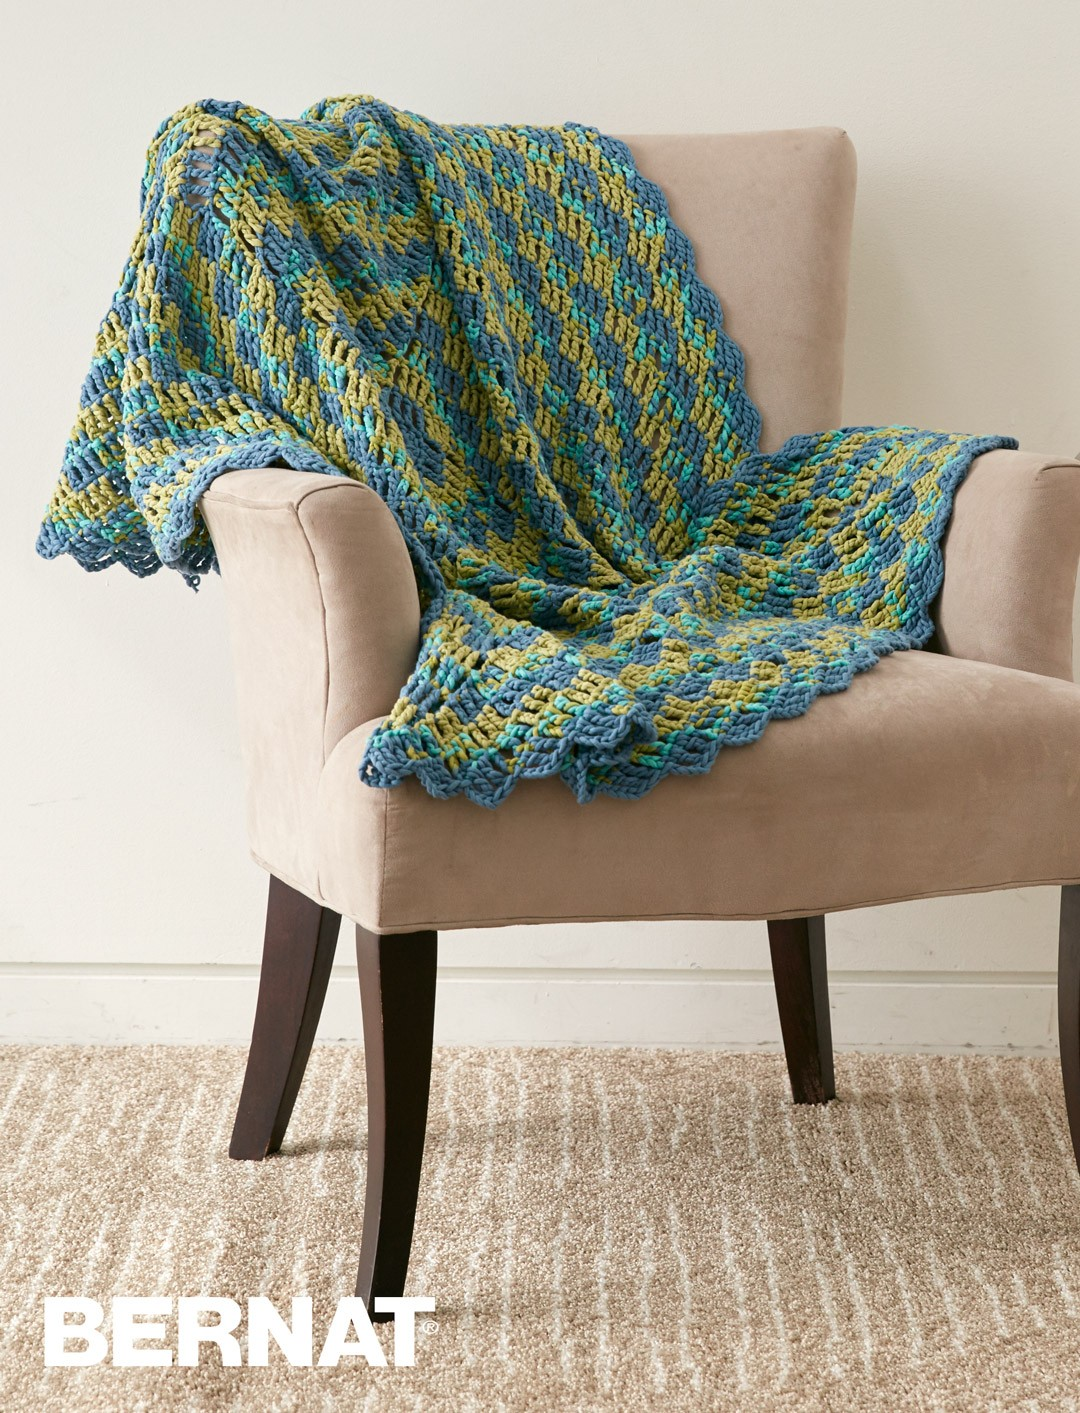 Bernat Round The Block Afghan Crochet Pattern